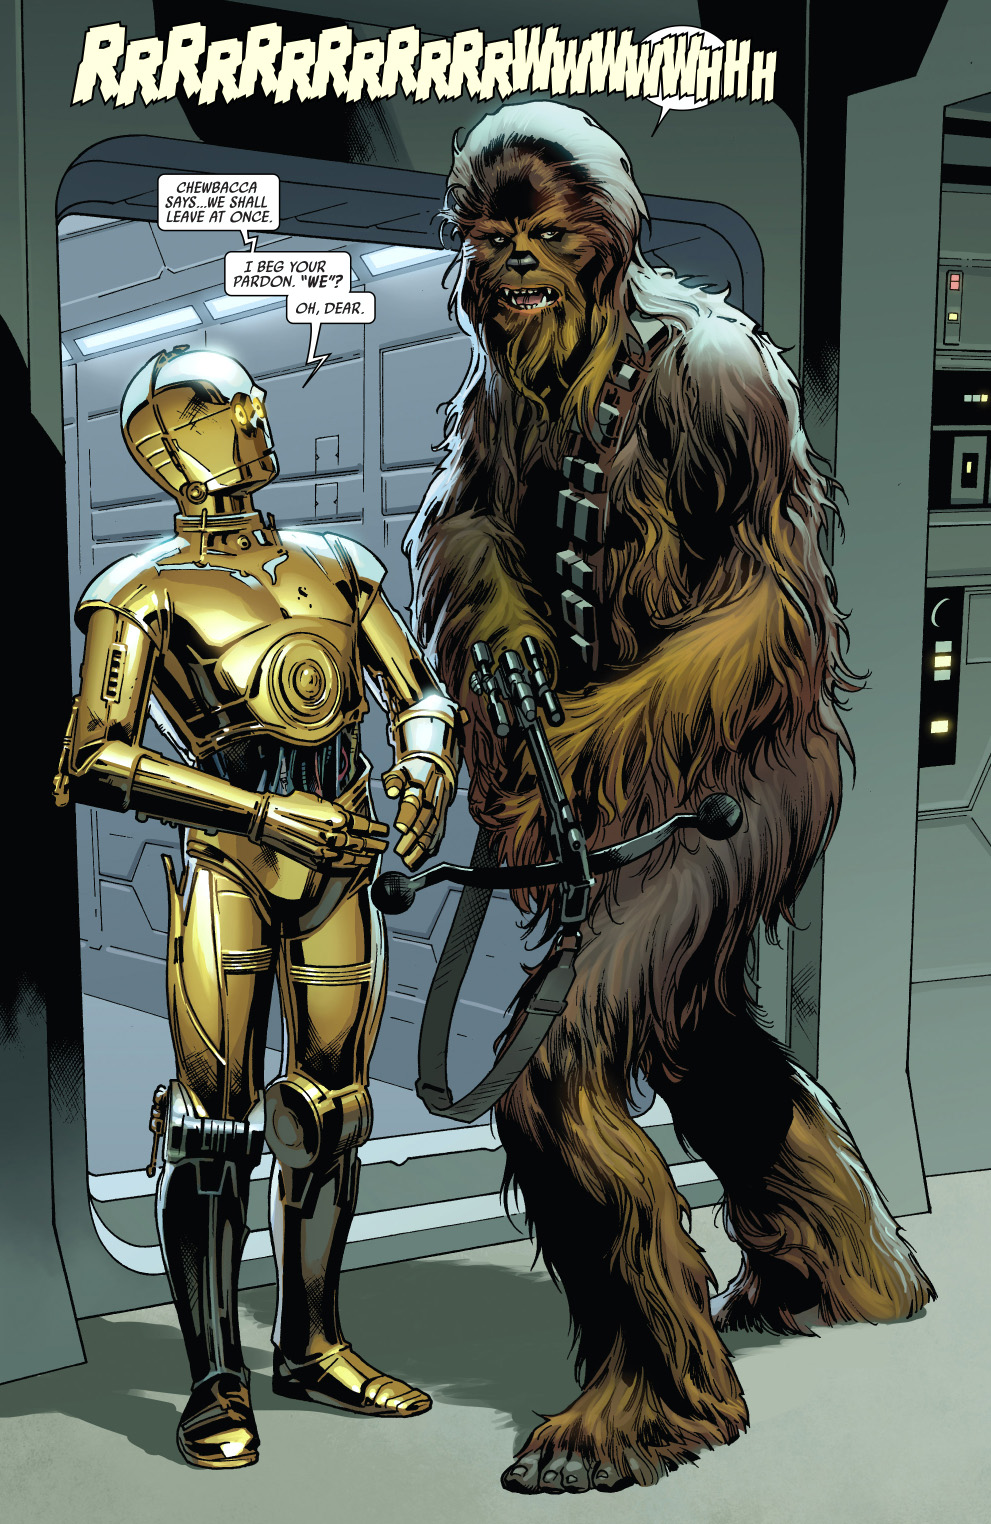 chewbacca and threepio